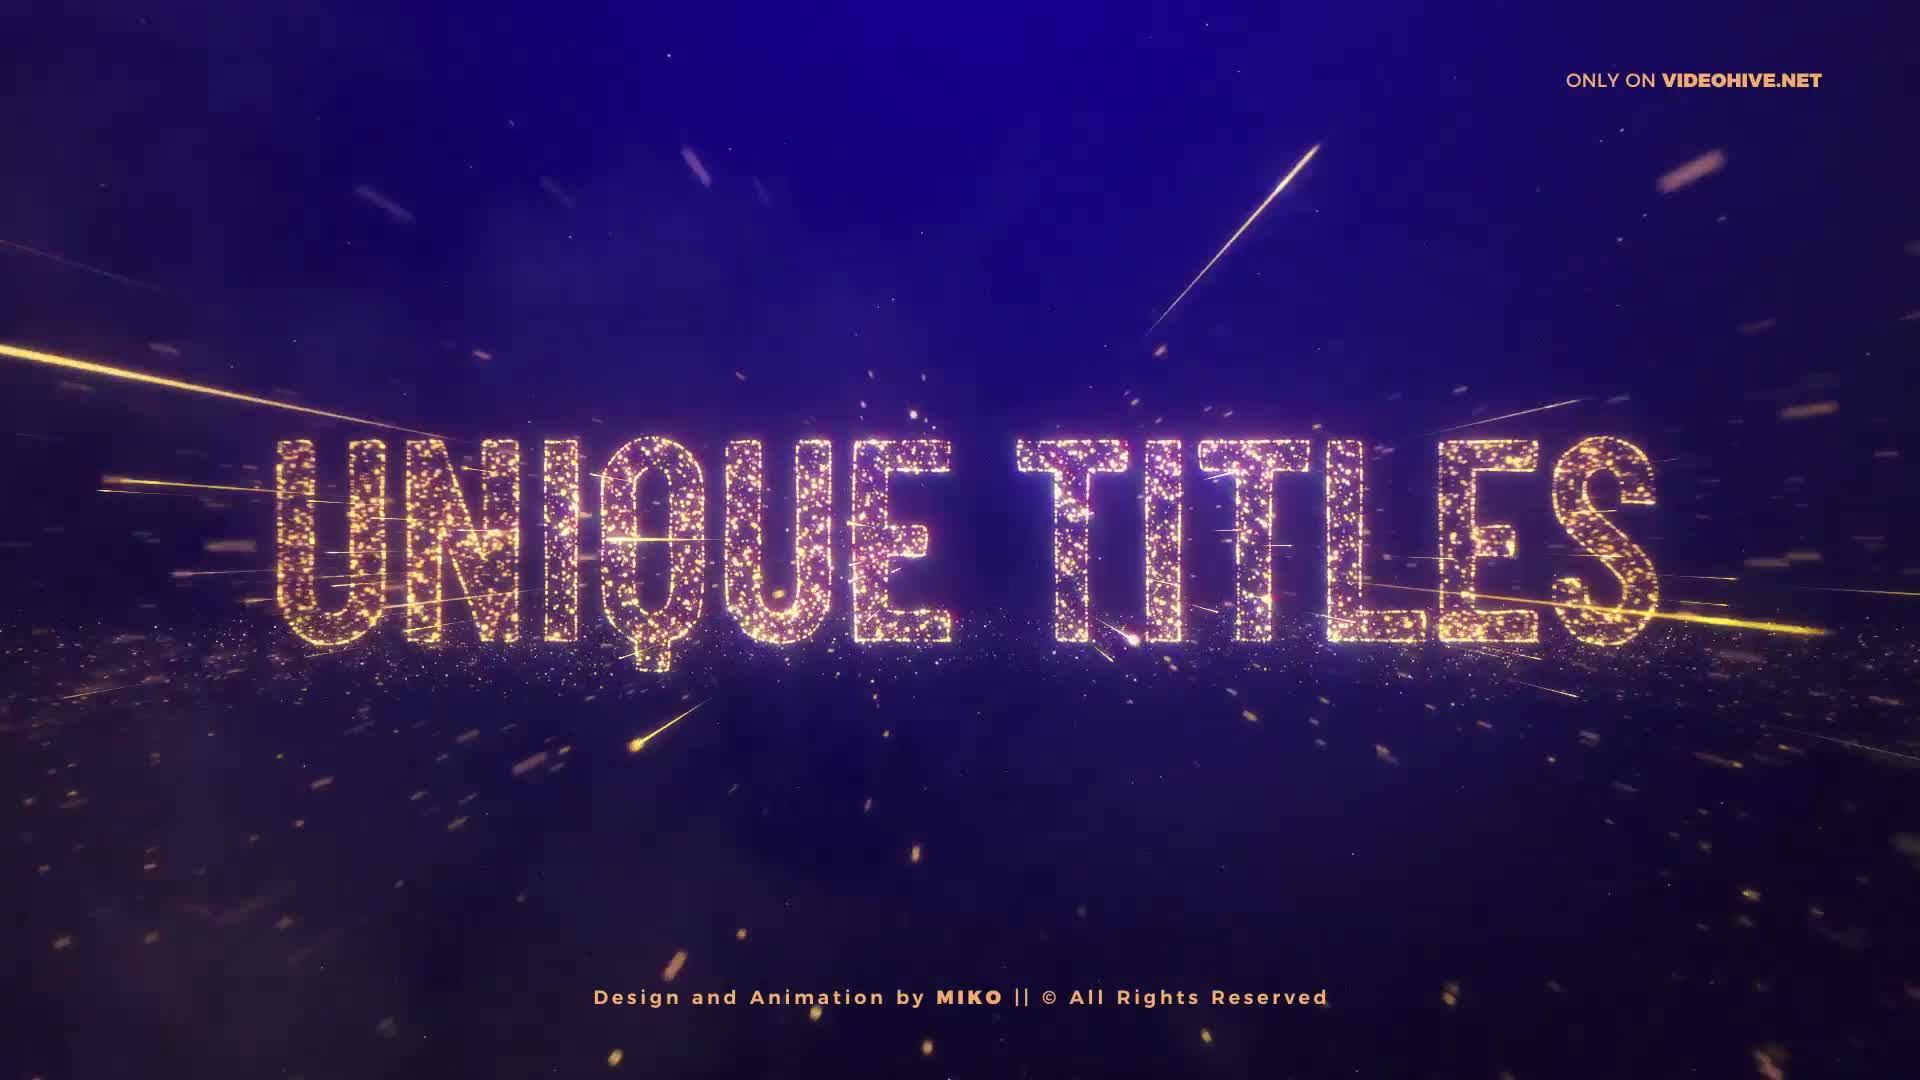 Awards Gold Particles Titles Videohive 24513891 After Effects Image 1